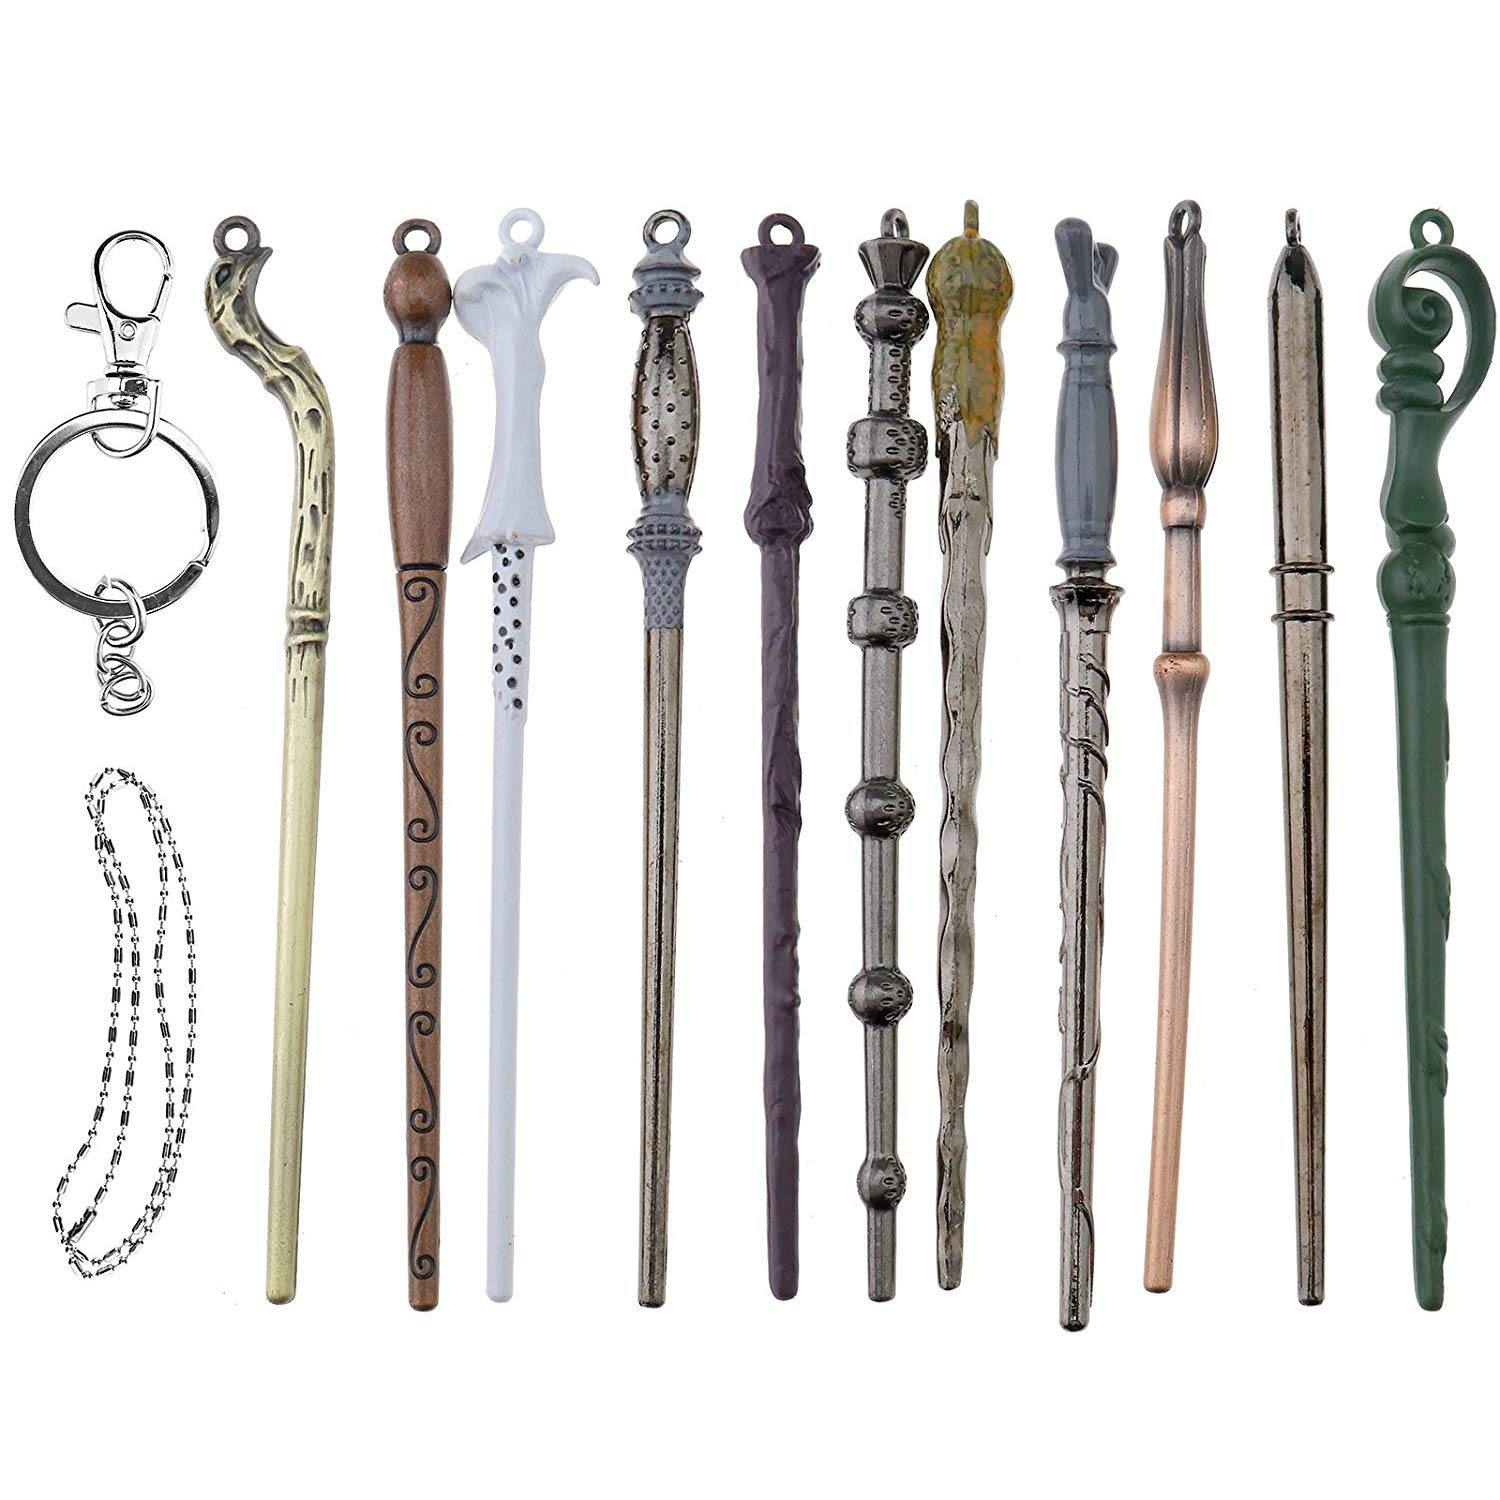 U&X Wizard Magic Wand Set Metal Mini Wand Cosplay Toy for Kids with Keychain and Necklace, Dumbledore Voldemort Magic Magic Wand In A Gift Box (11PC / Set)